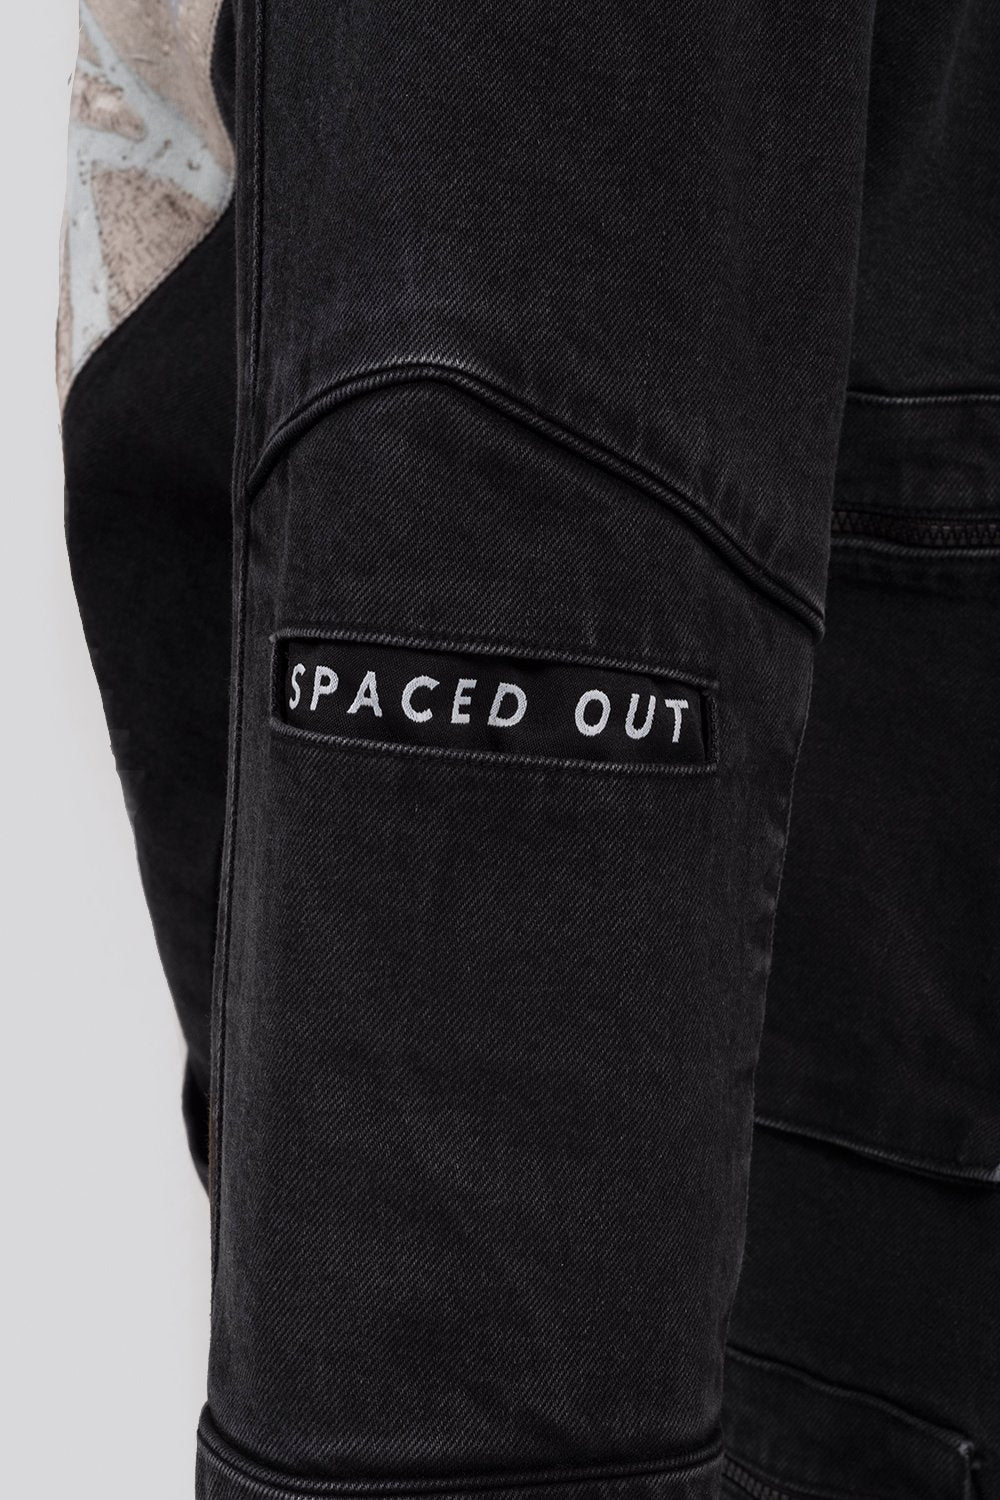 Black Unisex Denim Jacket with multiple functional pockets and art print panel on the back.  Designed in Madras, Made in India  | BISKIT UNISEX CLOTHING LABEL